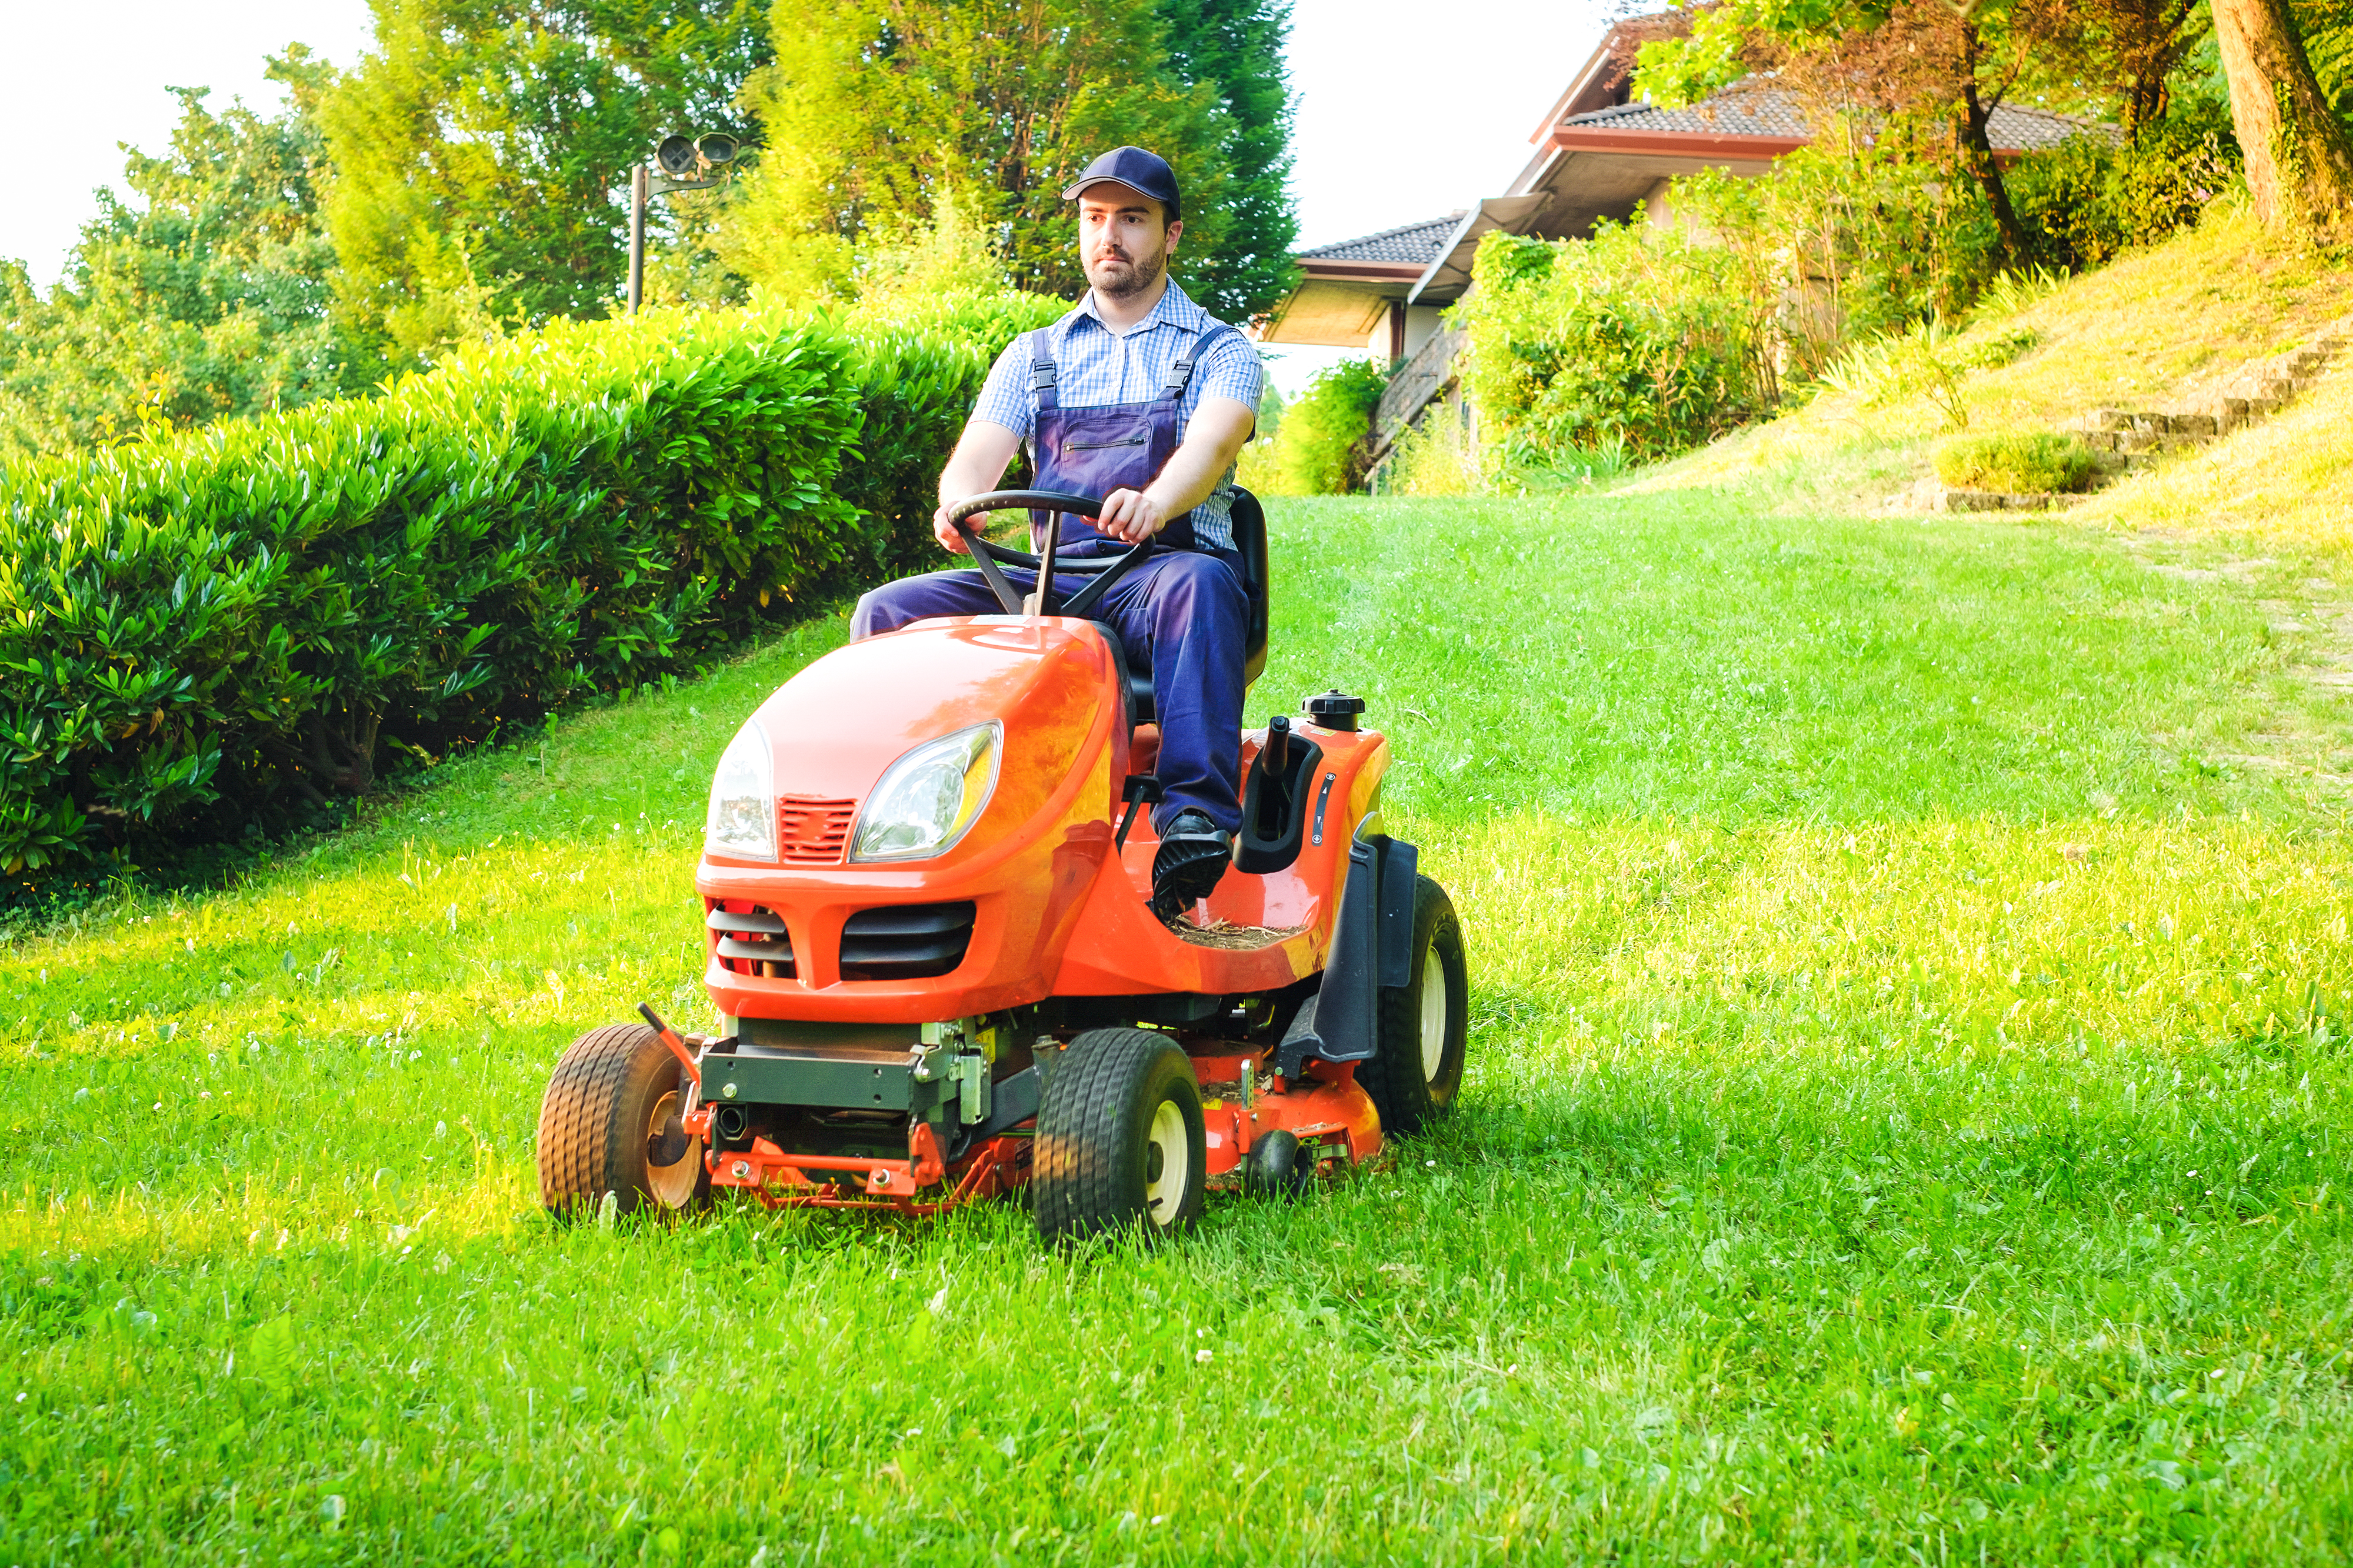 What Oil Do I Use for a Husqvarna 46 Inch Mower? | Home Guides | SF Gate